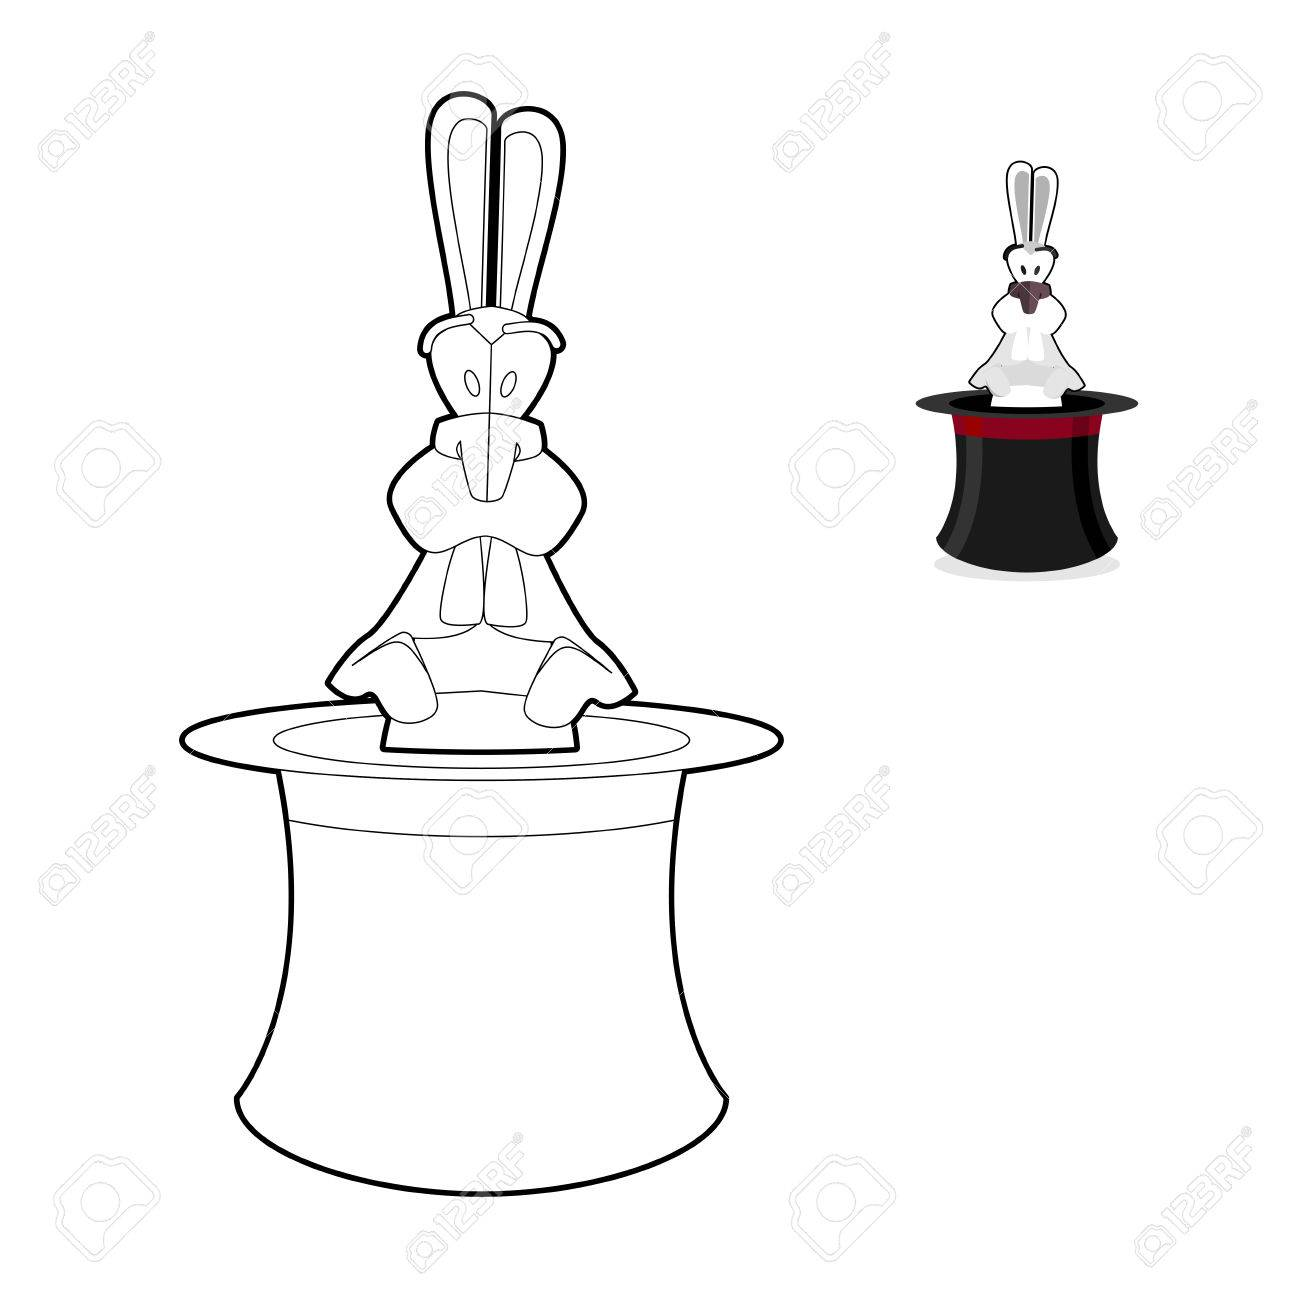 Rabbit In Magician Hat Coloring Book Focus In Linear Style